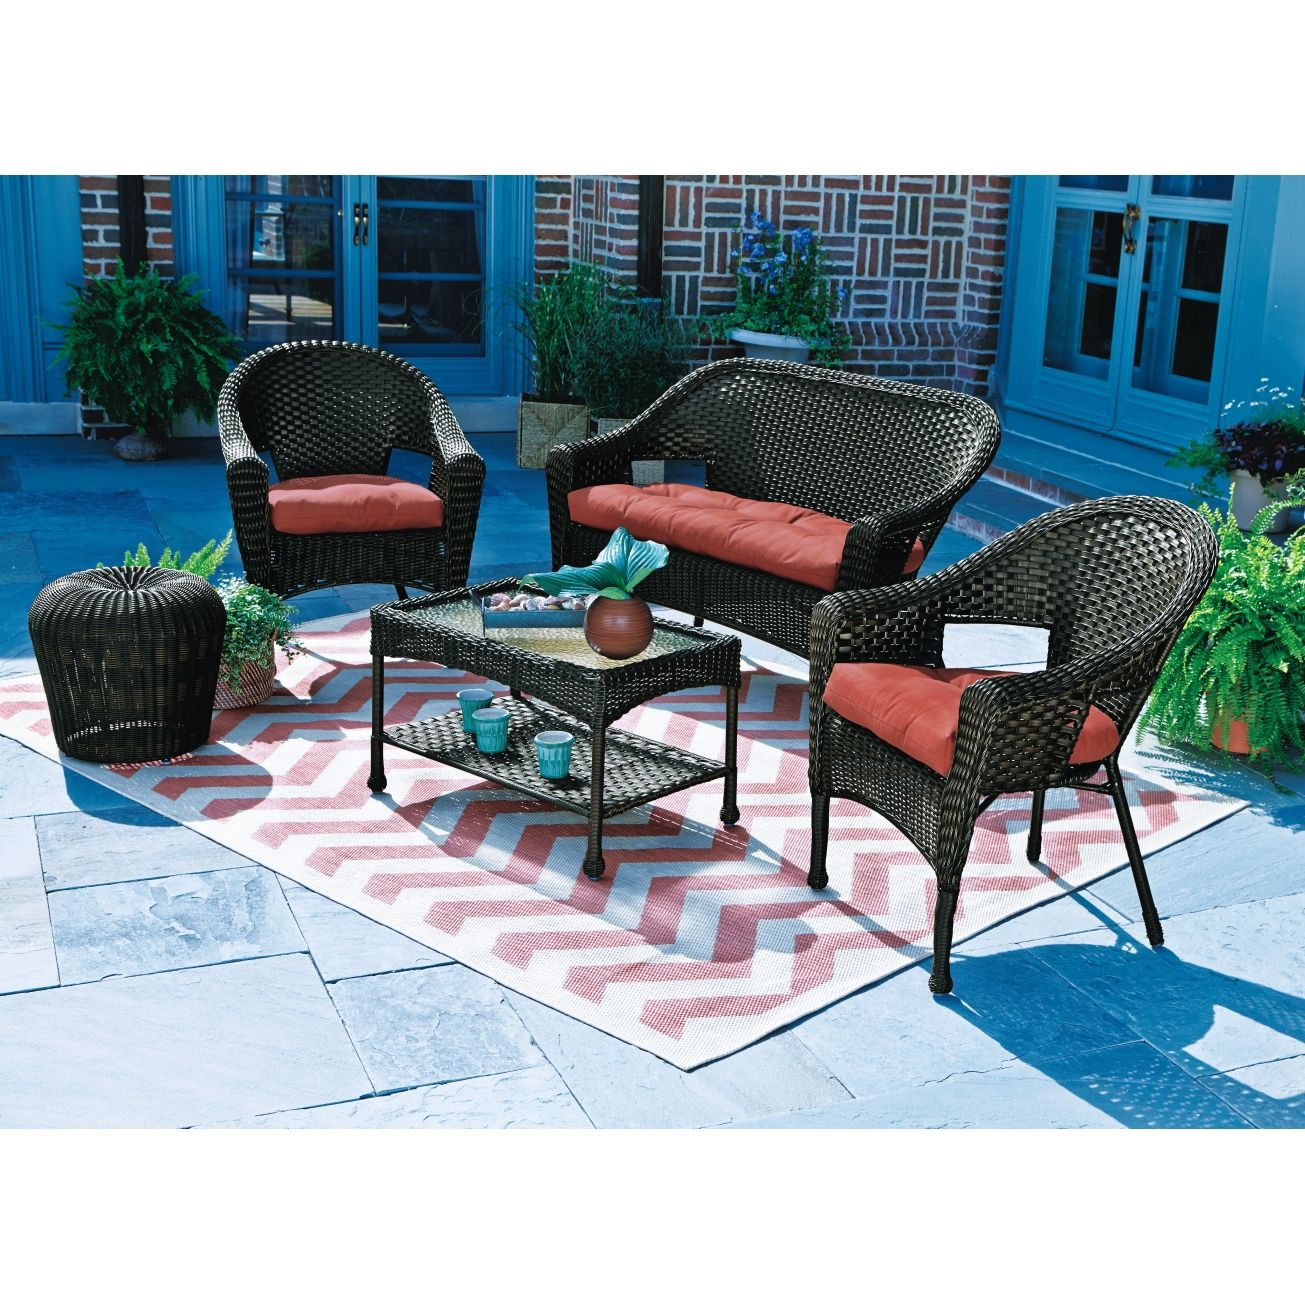 Living Accents Verona Stackable Wicker Chair - Deep ... on Ace Outdoor Living id=17773